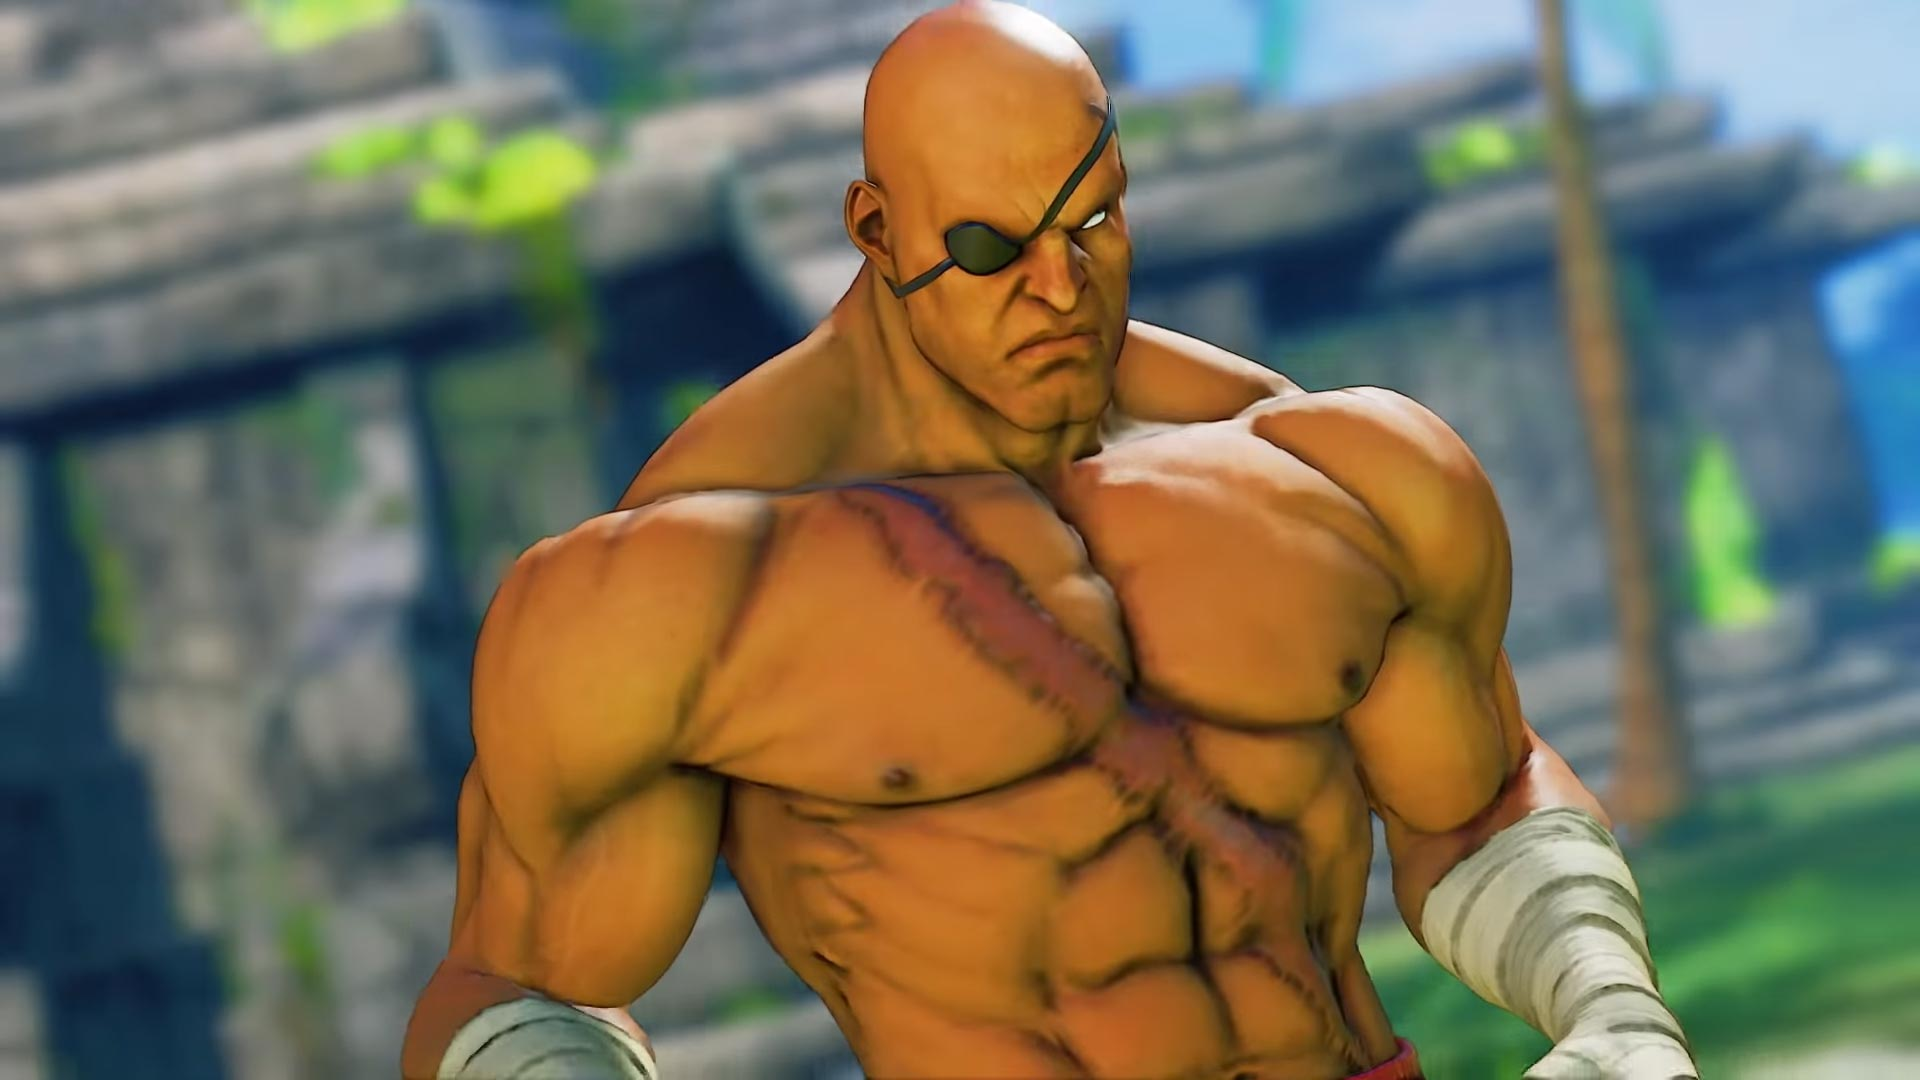 G and Sagat Street Fighter 5: Arcade Edition 7 out of 15 image gallery